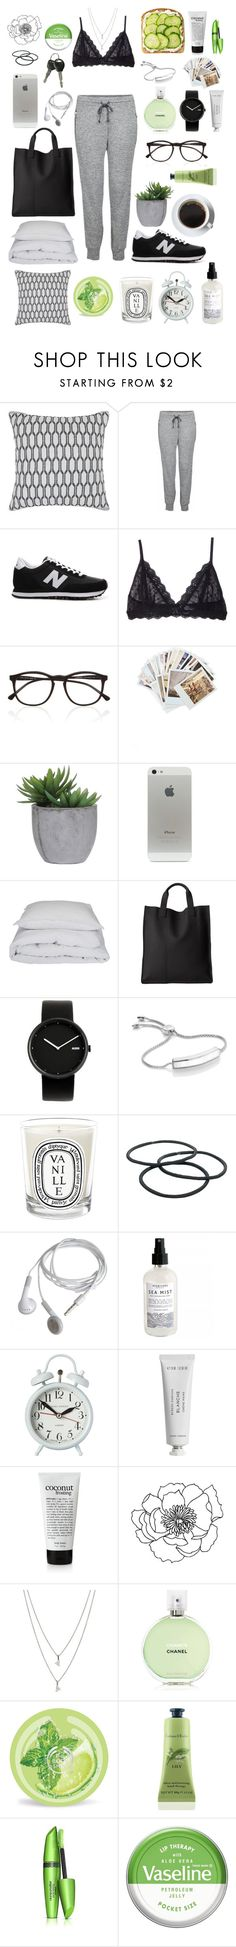 """""""Sans titre #158"""" by izaza ❤ liked on Polyvore featuring Chandra Rugs, LnA, New Balance, Eberjey, Illesteva, Chronicle Books, Lux-Art Silks, By Nord, ECCO and Alessi"""